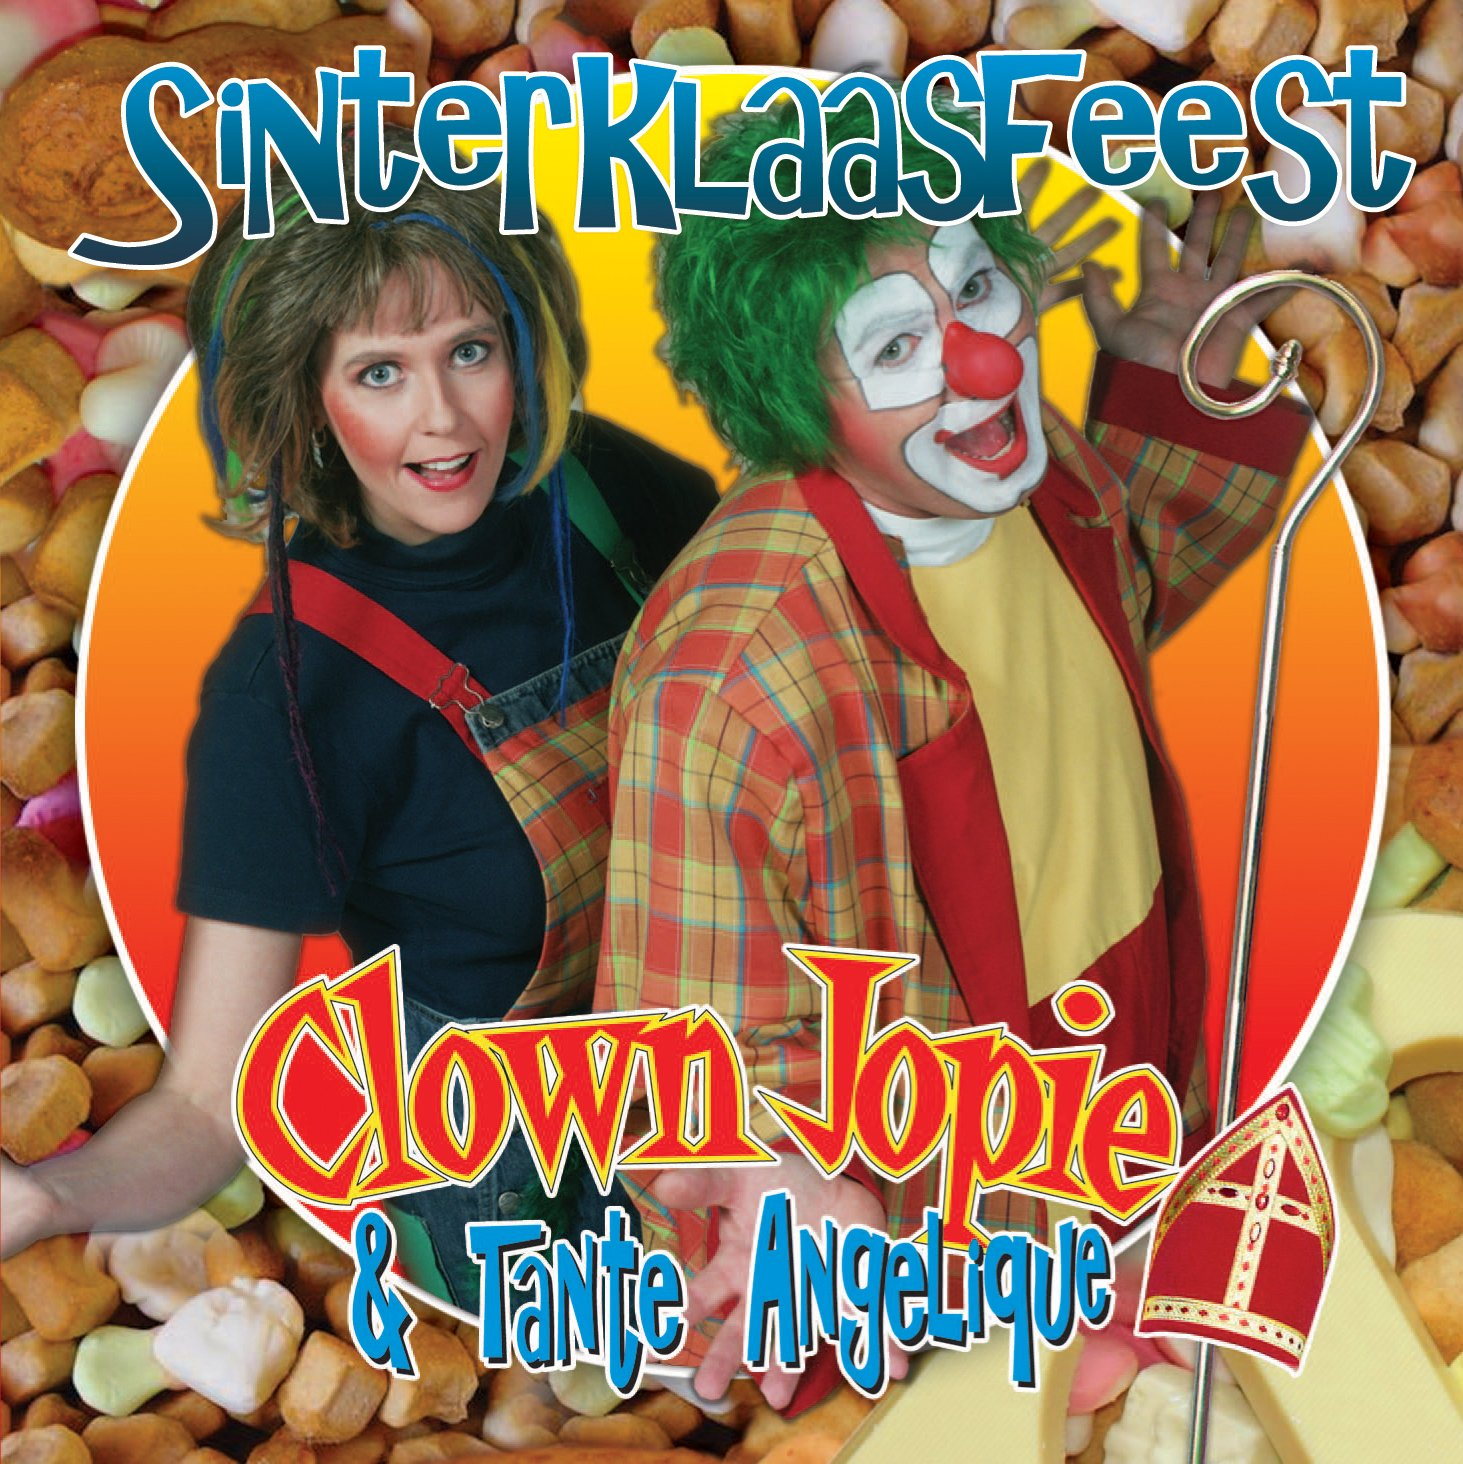 Sinterklaasfeest-clown-jopie-en-tante-angelique